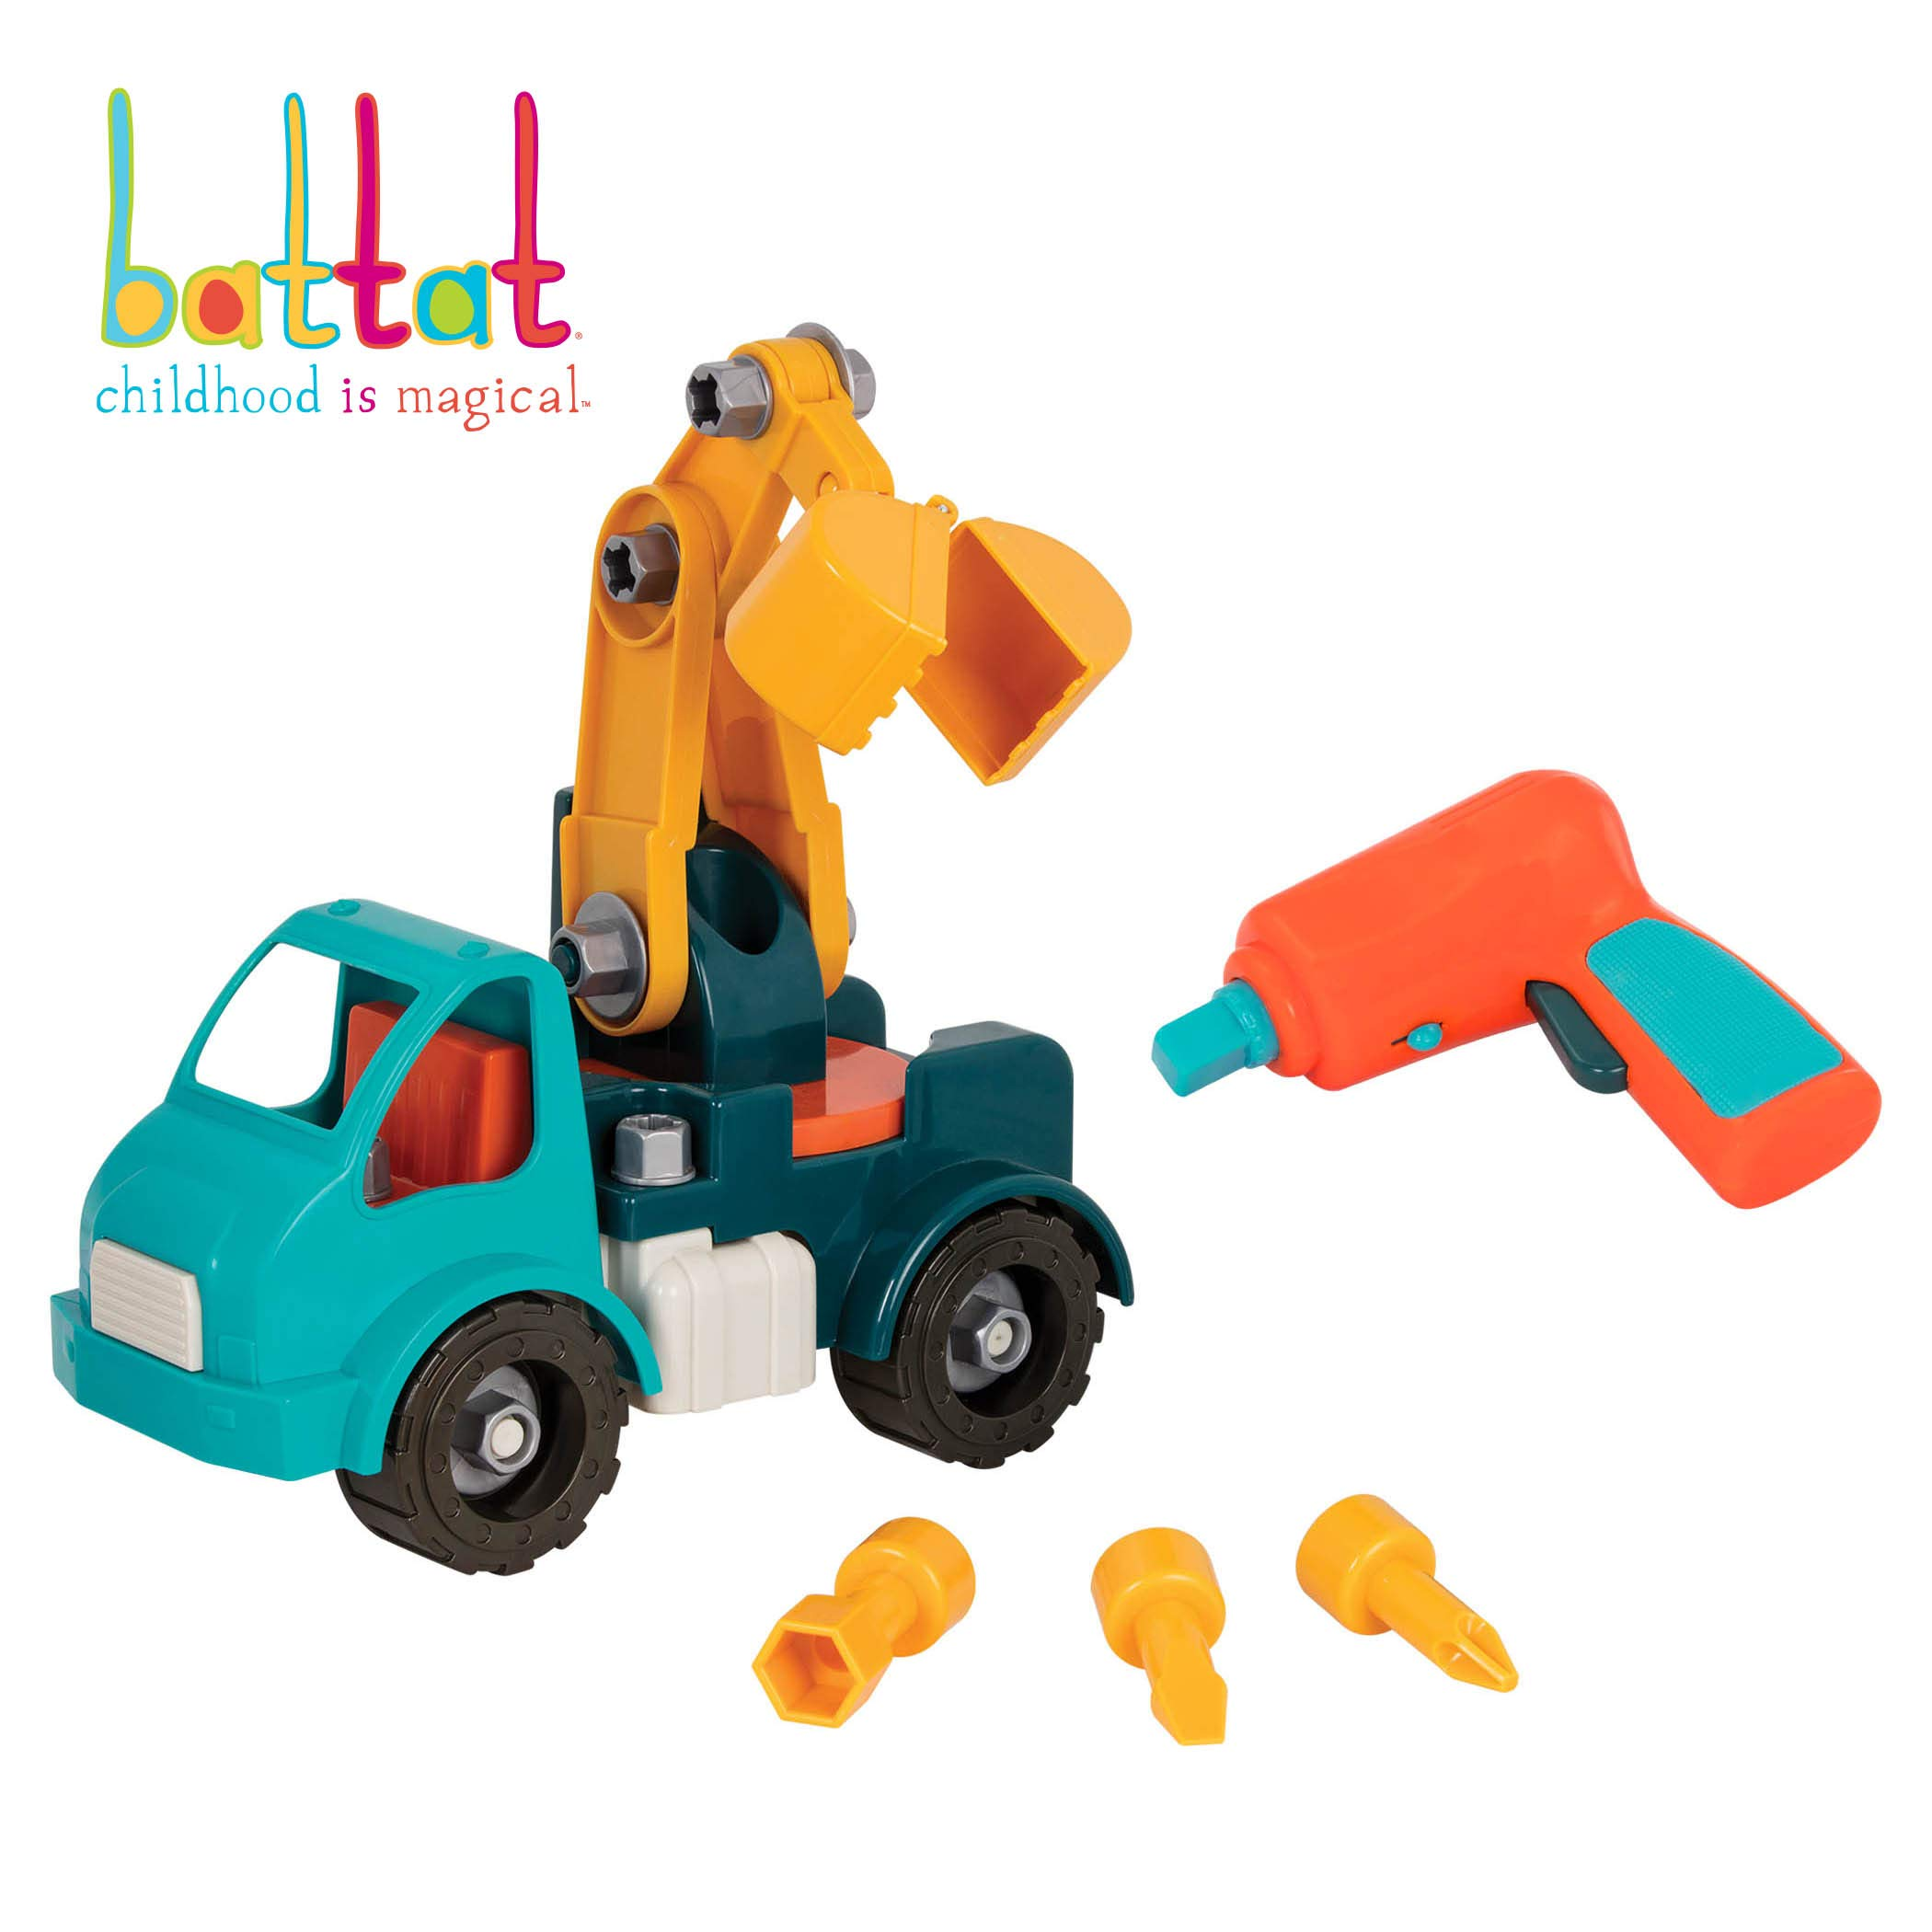 Battat - Take-Apart Crane Truck - Toy vehicle assembly playset with functional battery-powered drill - Early childhood developmental skills toy for kids aged 3 and up by Battat